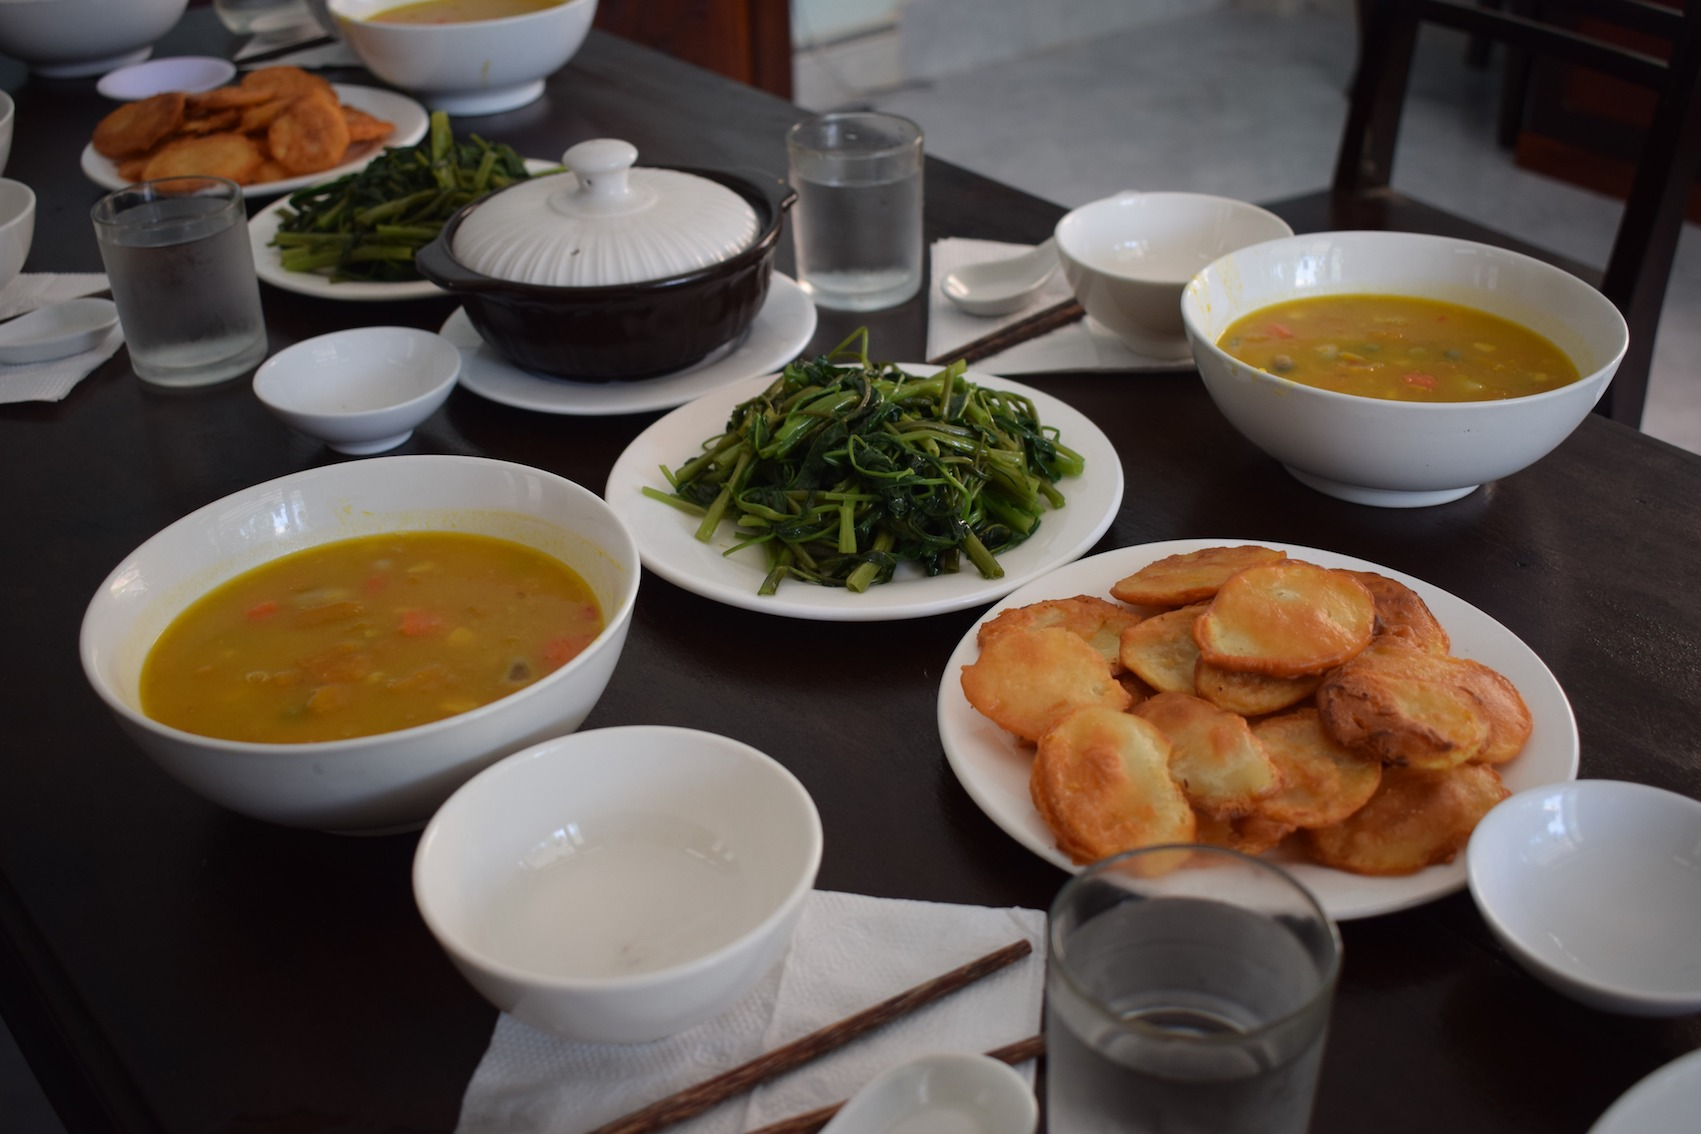 mindful-living-meditation-retreat-cham-island-hoi-an-food.jpg